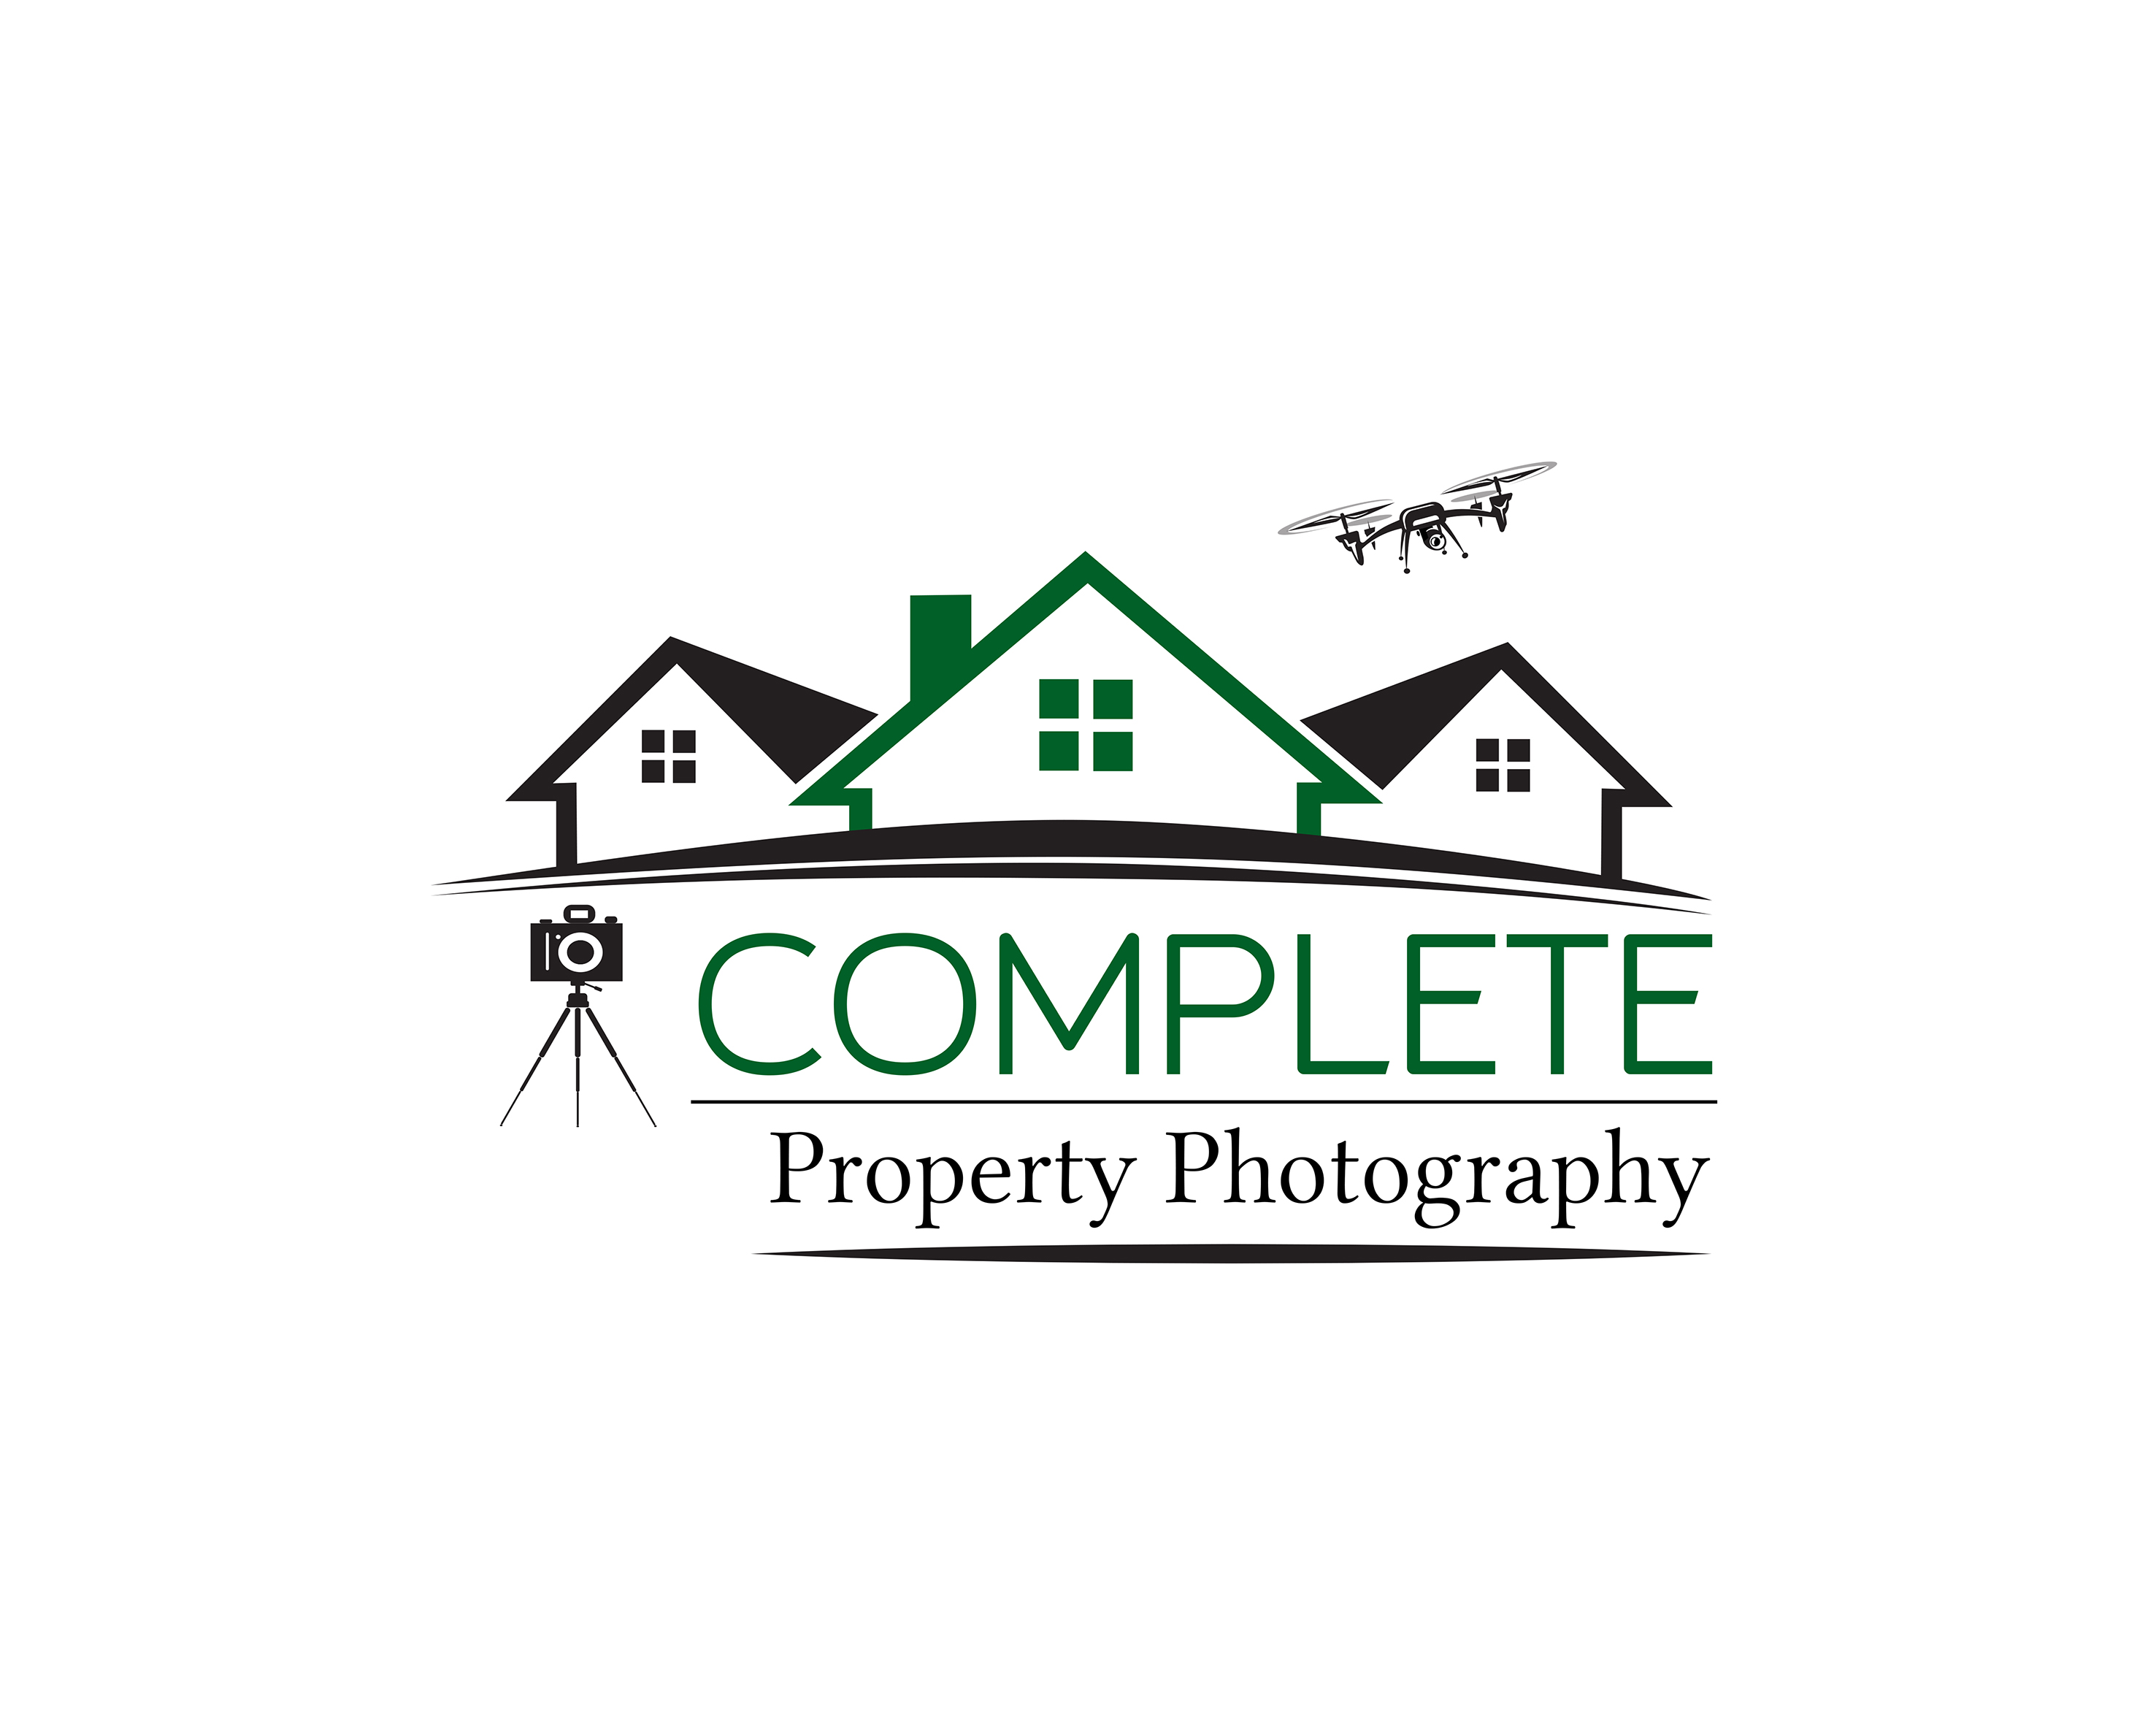 Complete Property Photography